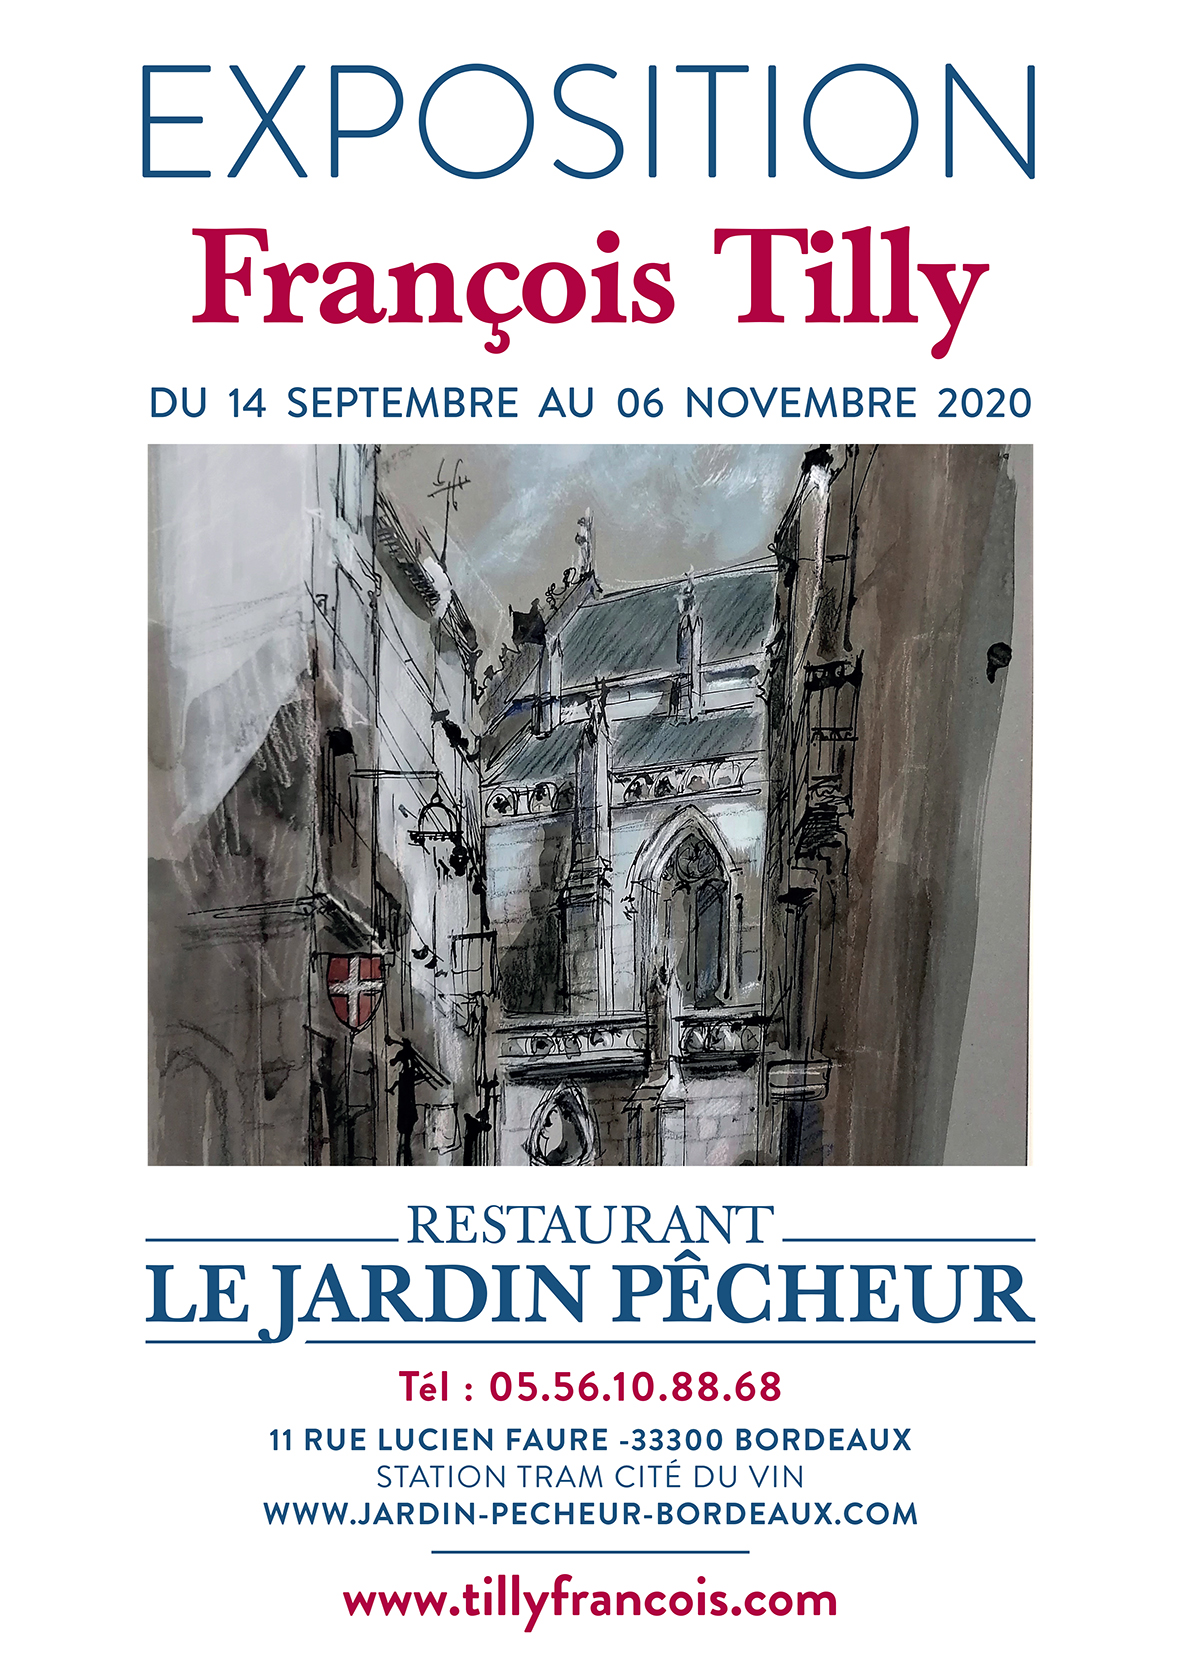 Exposition François TILLY